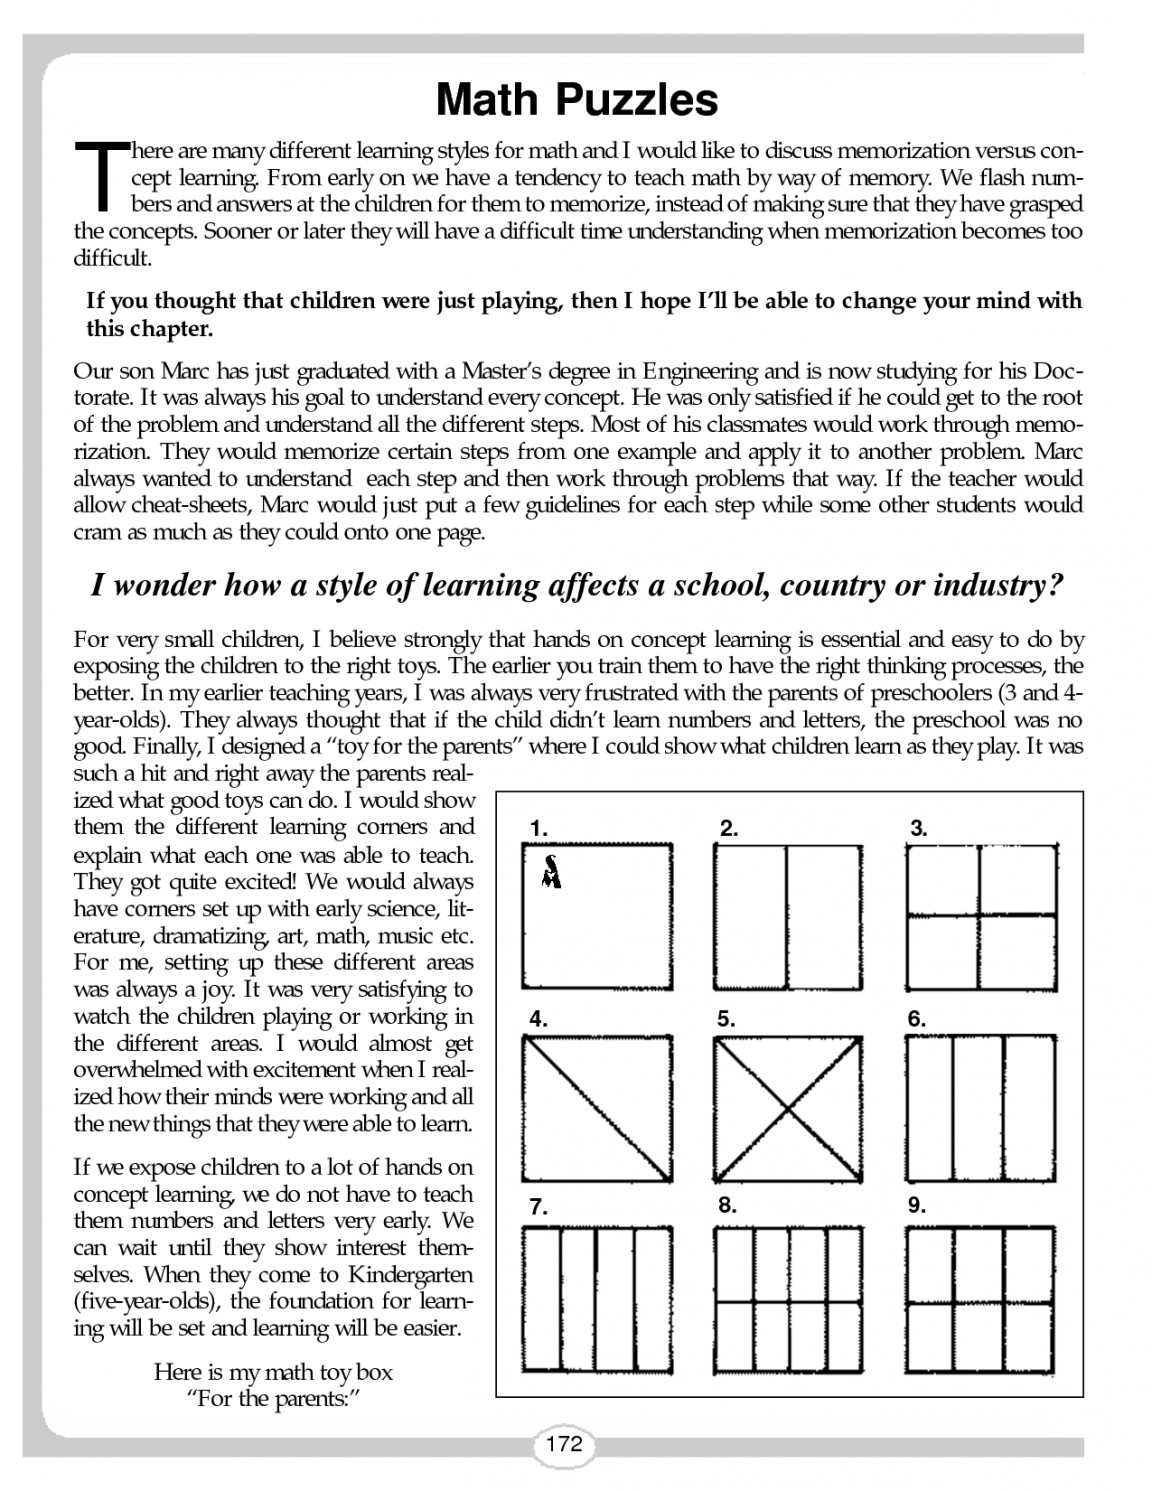 Printable Logic Puzzles For Middle School New Crossword Thanksgiving - Printable Puzzles Middle School